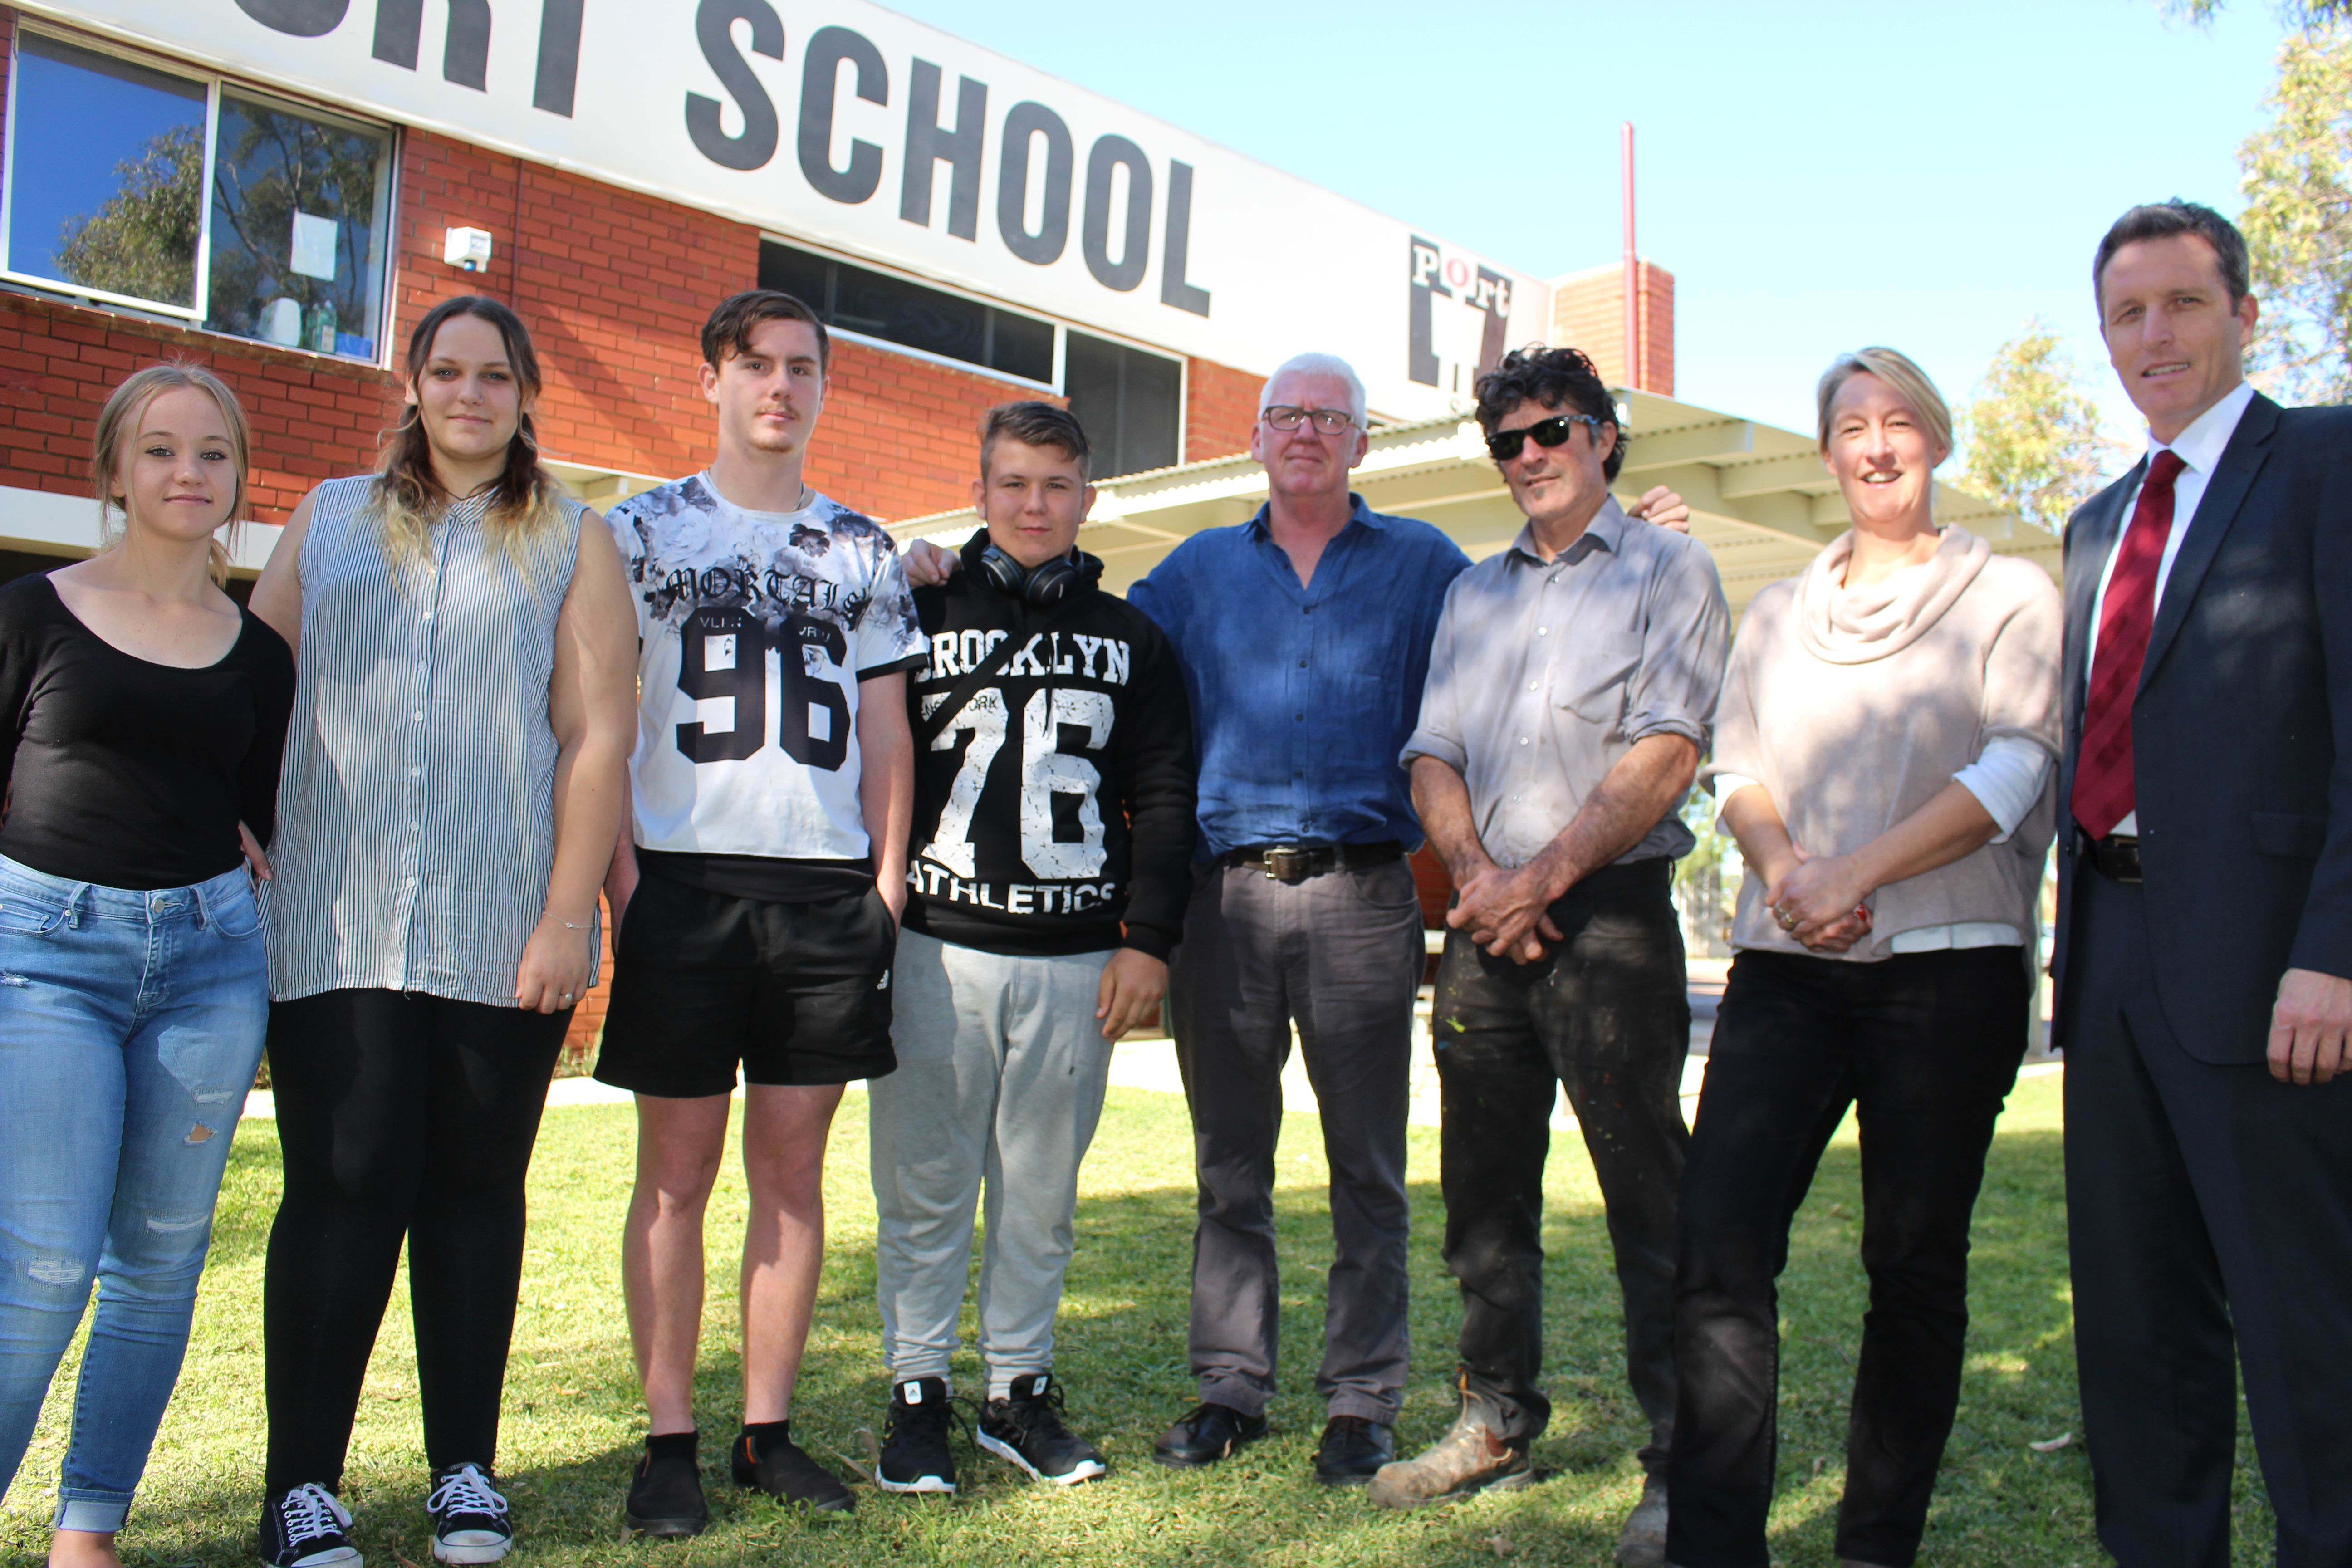 Port School students Georgia Bleach, Hayley O'Neill, Cameron Lloyd and Conor Casserly with principal Barry Finch, mentor Tony Dockerty, Port School VET co-ordinator Steph Daniell and Fremantle MP Josh Wilson.